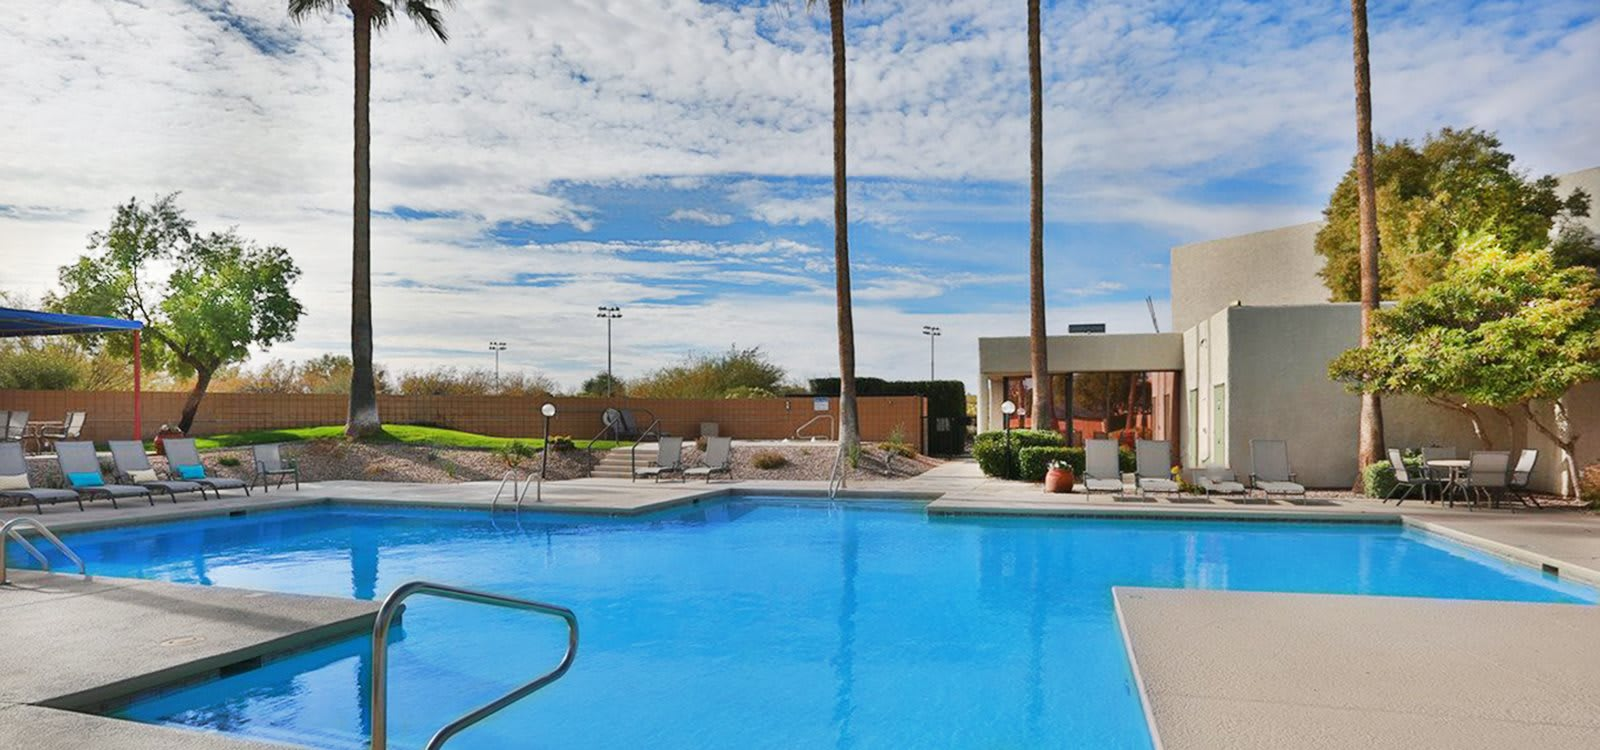 Springhill Apartments Community Pool with lounge chairs around.